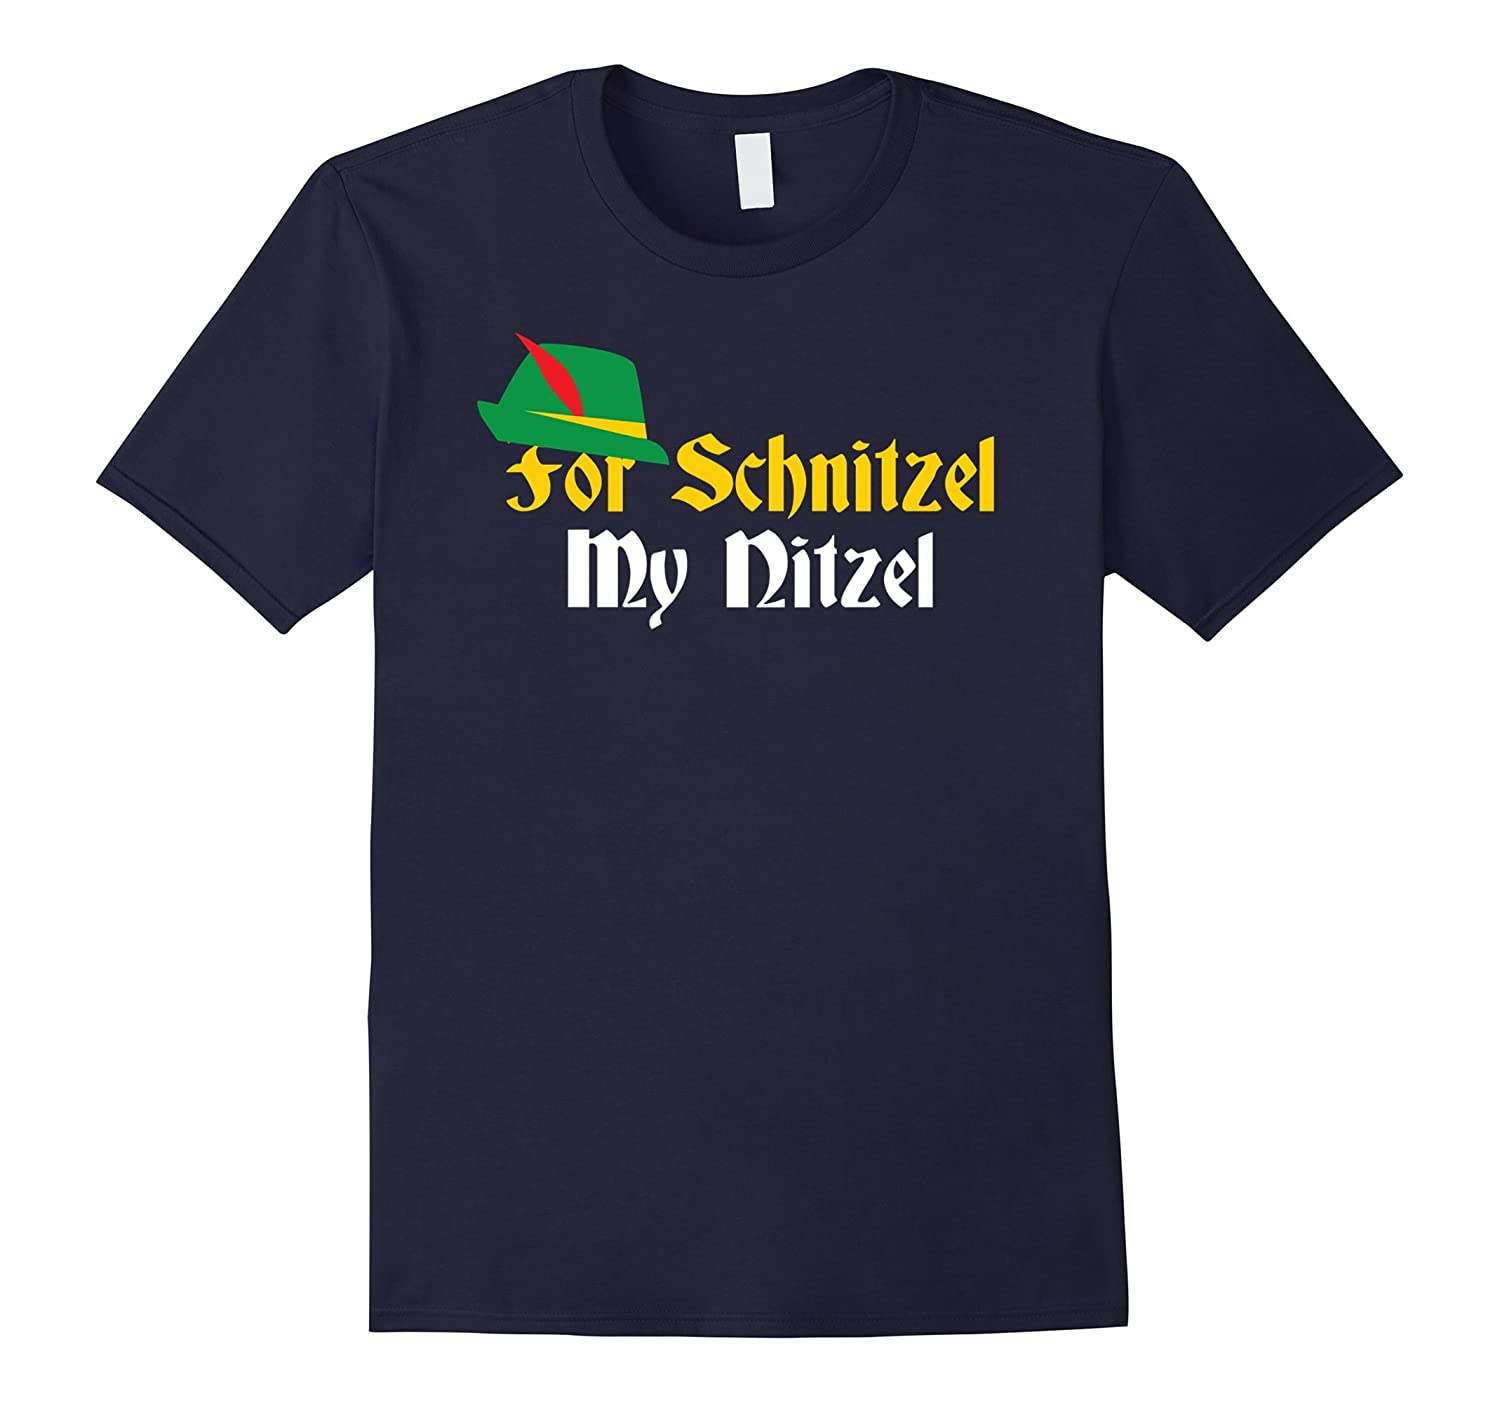 For Schnitzel My Nitzel Shirt, Funny German Oktoberfest Beer-BN